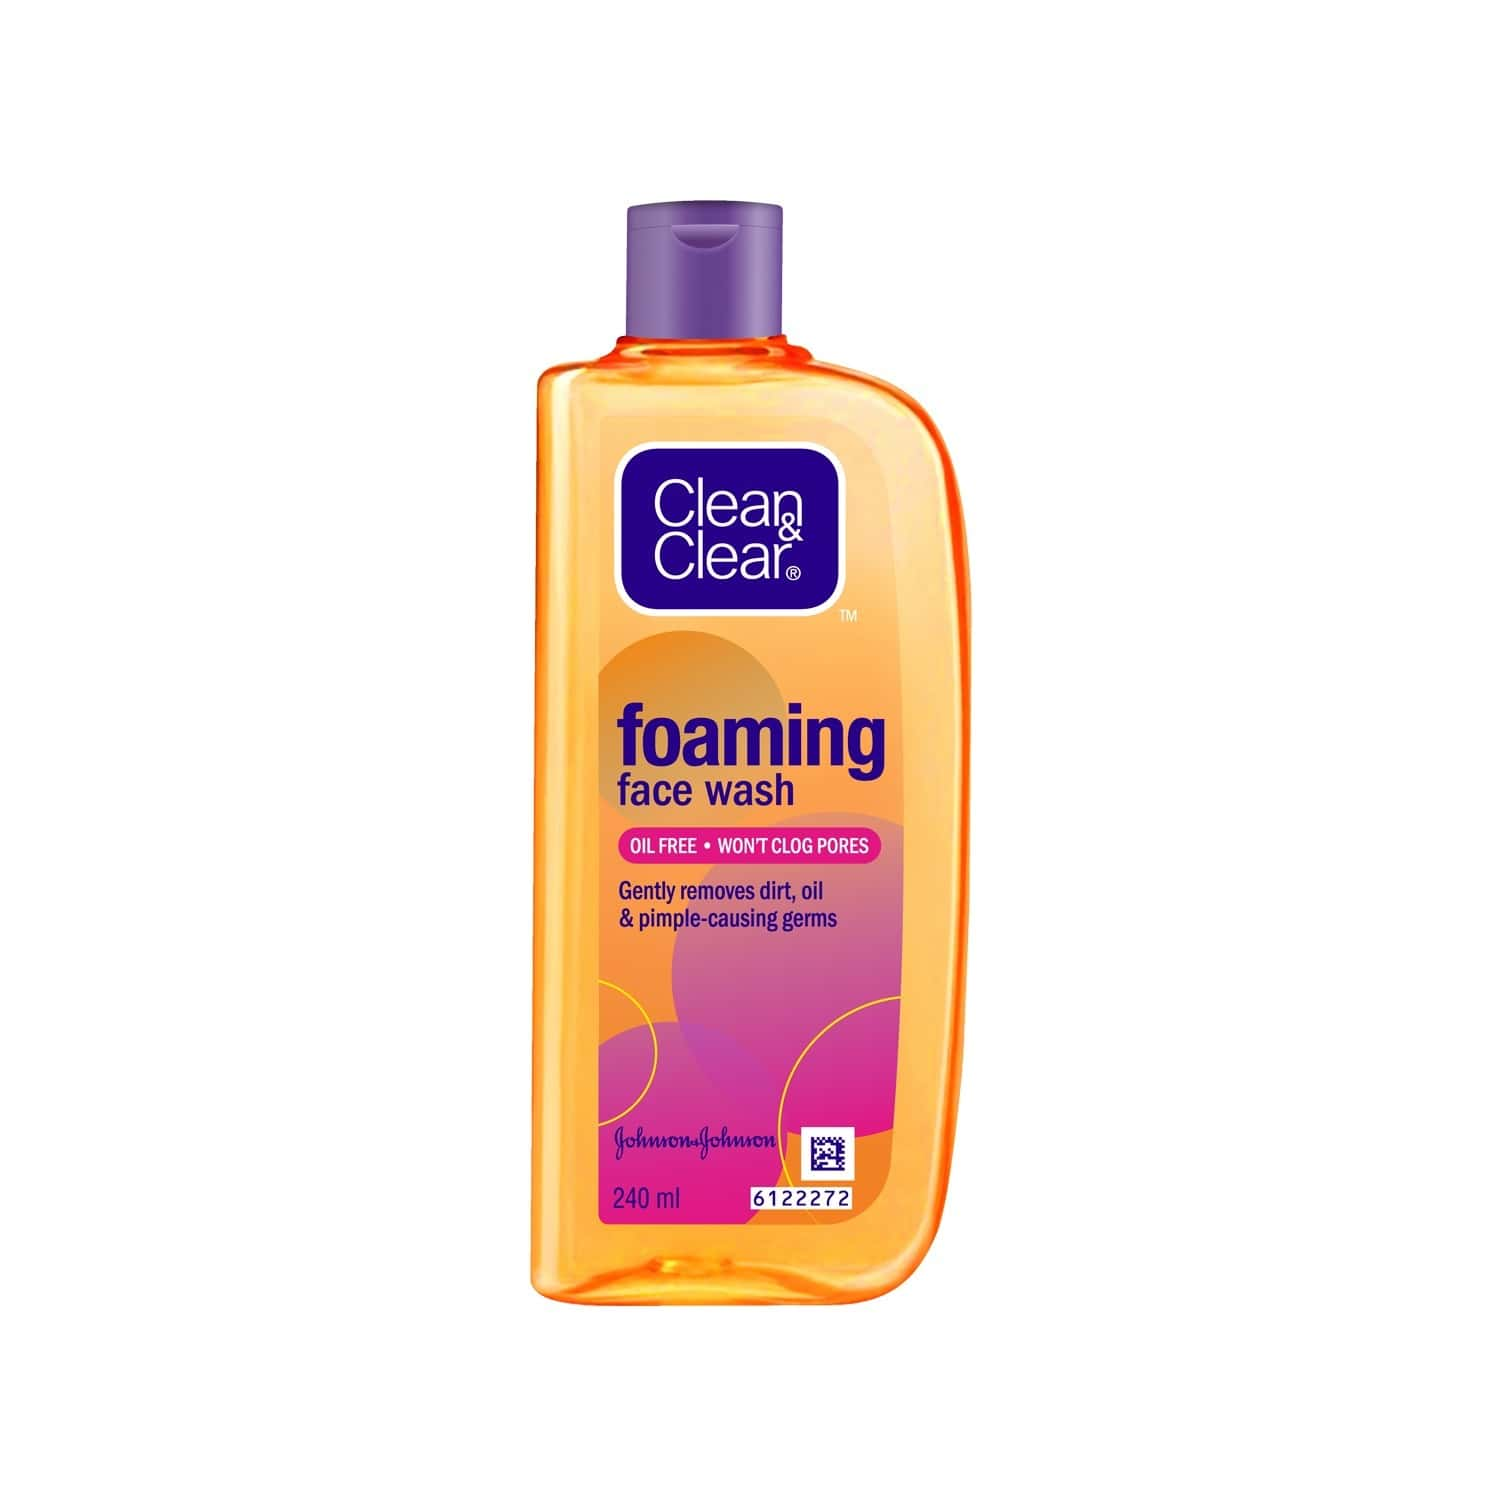 Clean & Clear Foaming Face Wash - 240ml